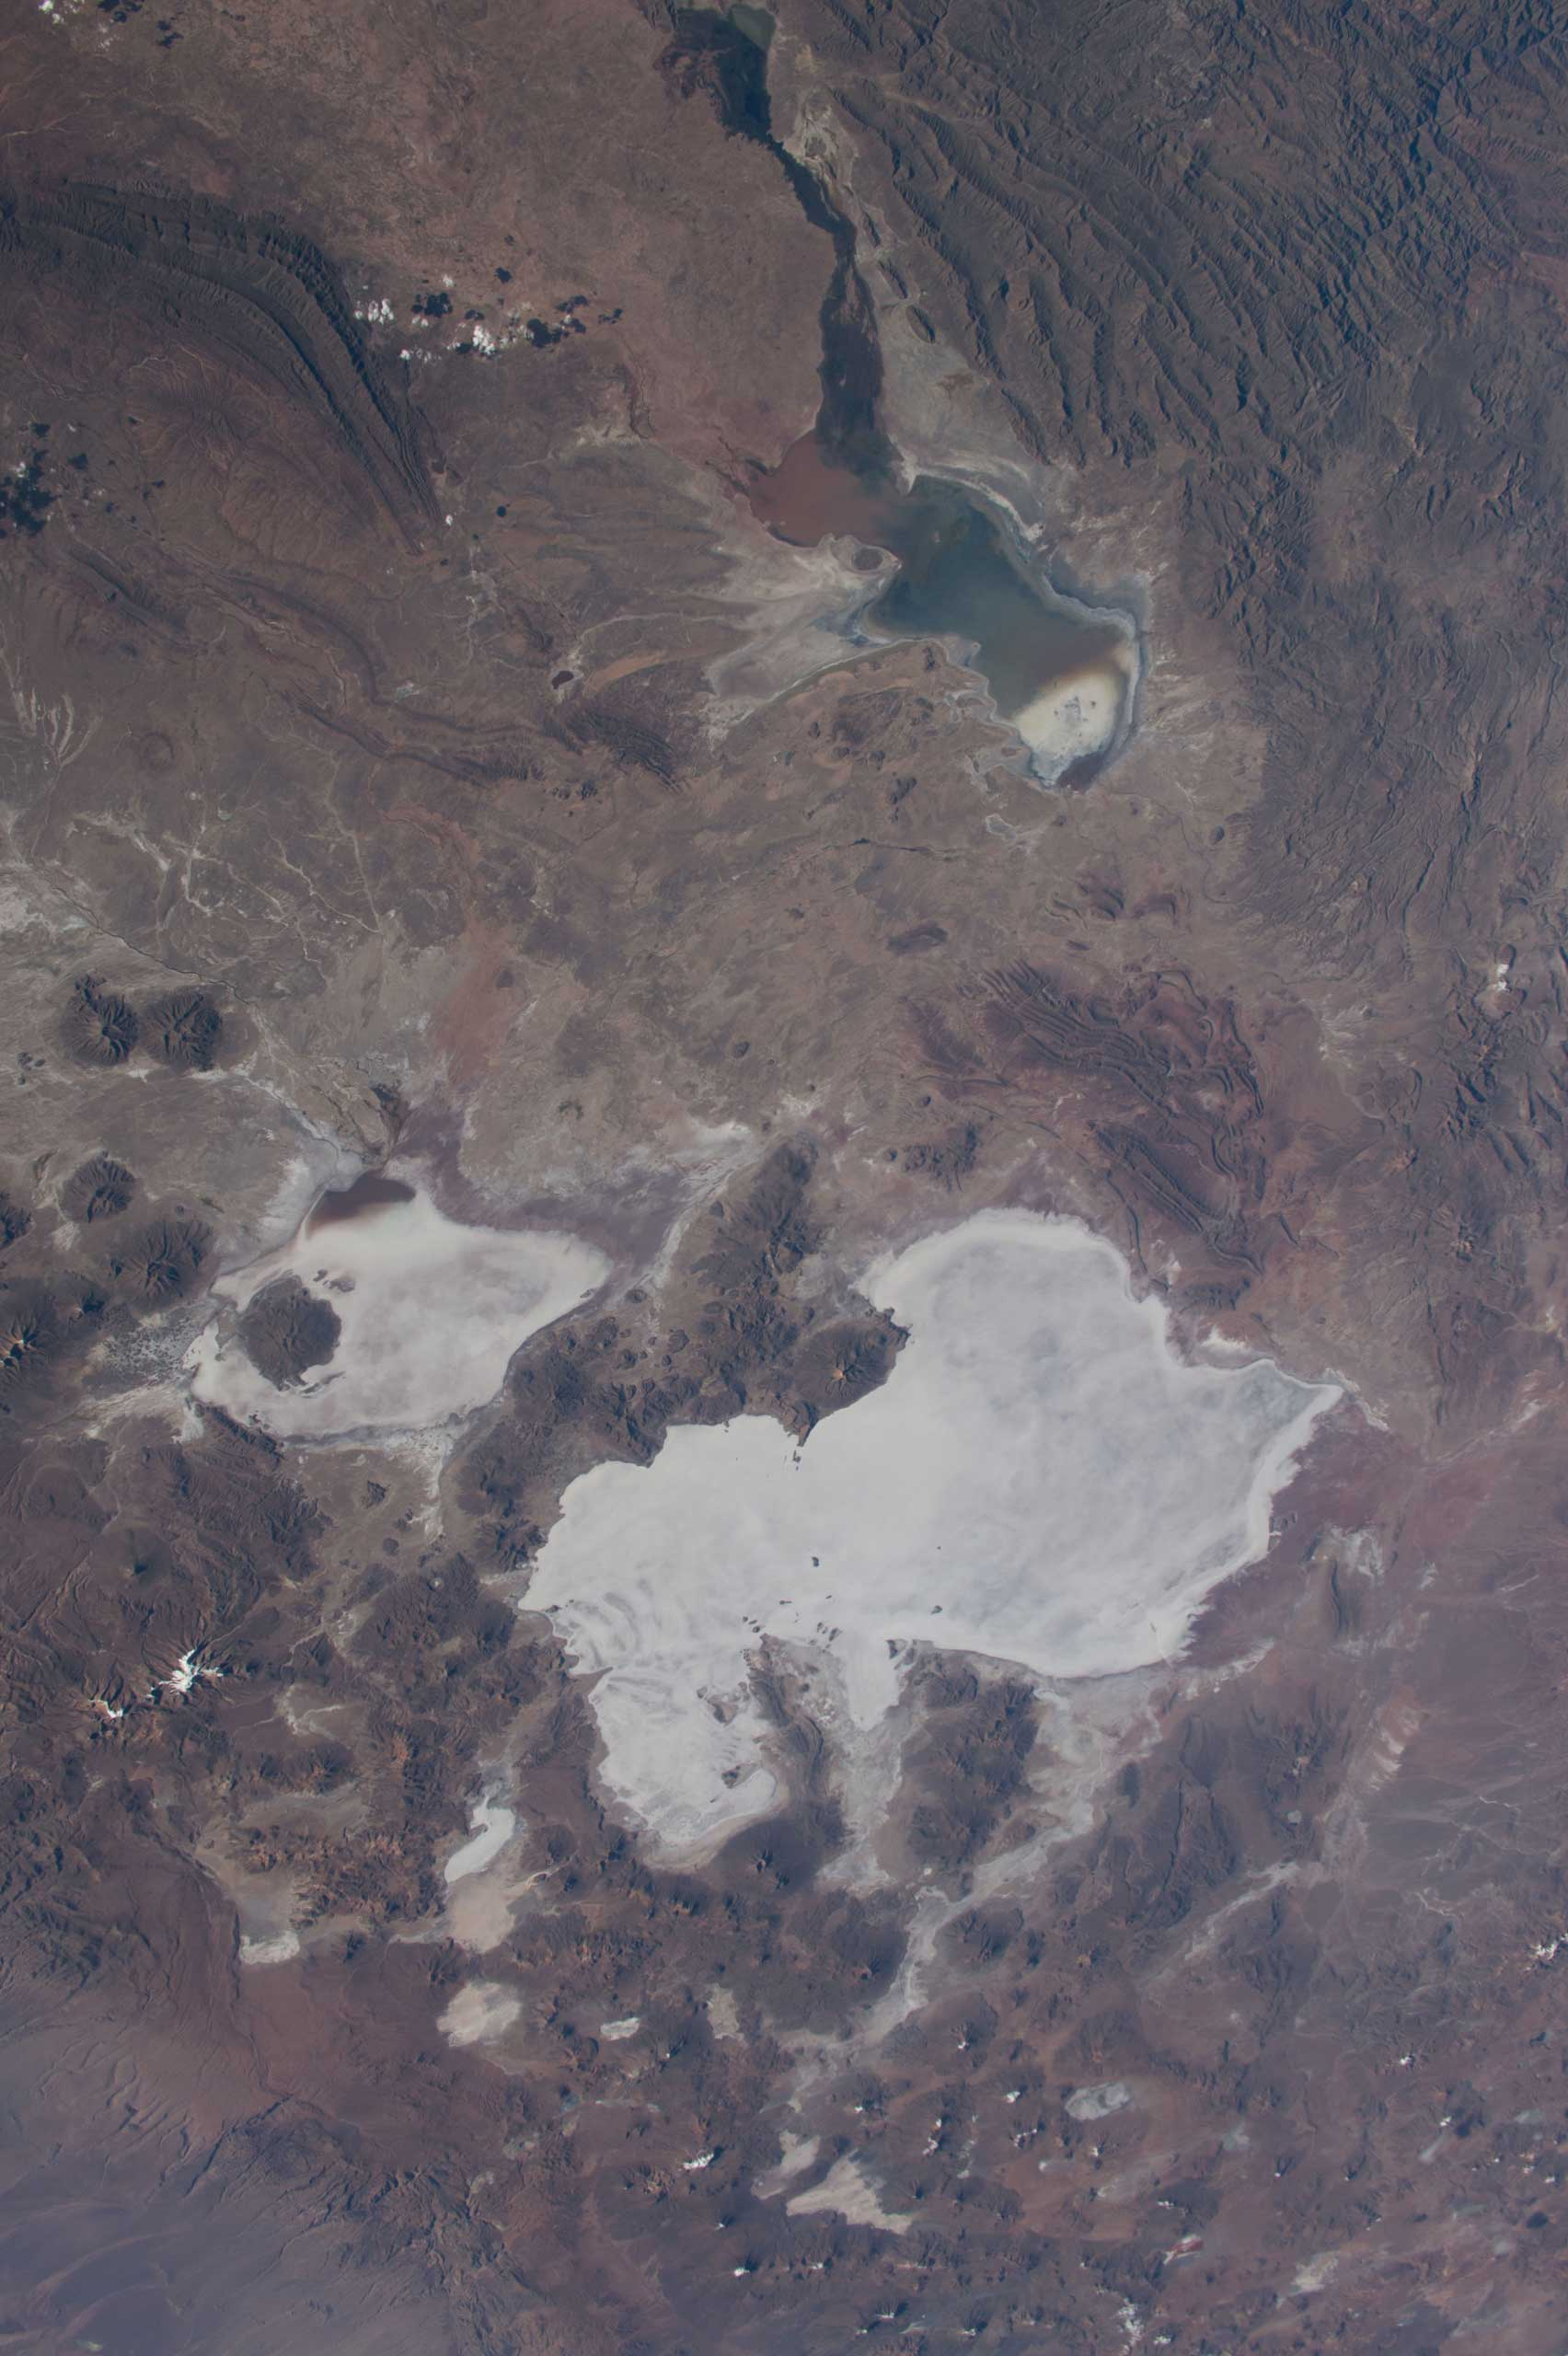 NASA astronaut Terry Virts Expedition 43 Commander on the International Space Station tweeted this Earth observation image of South America with the following comment:  Salar de Uyuni in the #Bolivia desert #SouthAmerica. The world's largest salt flat .